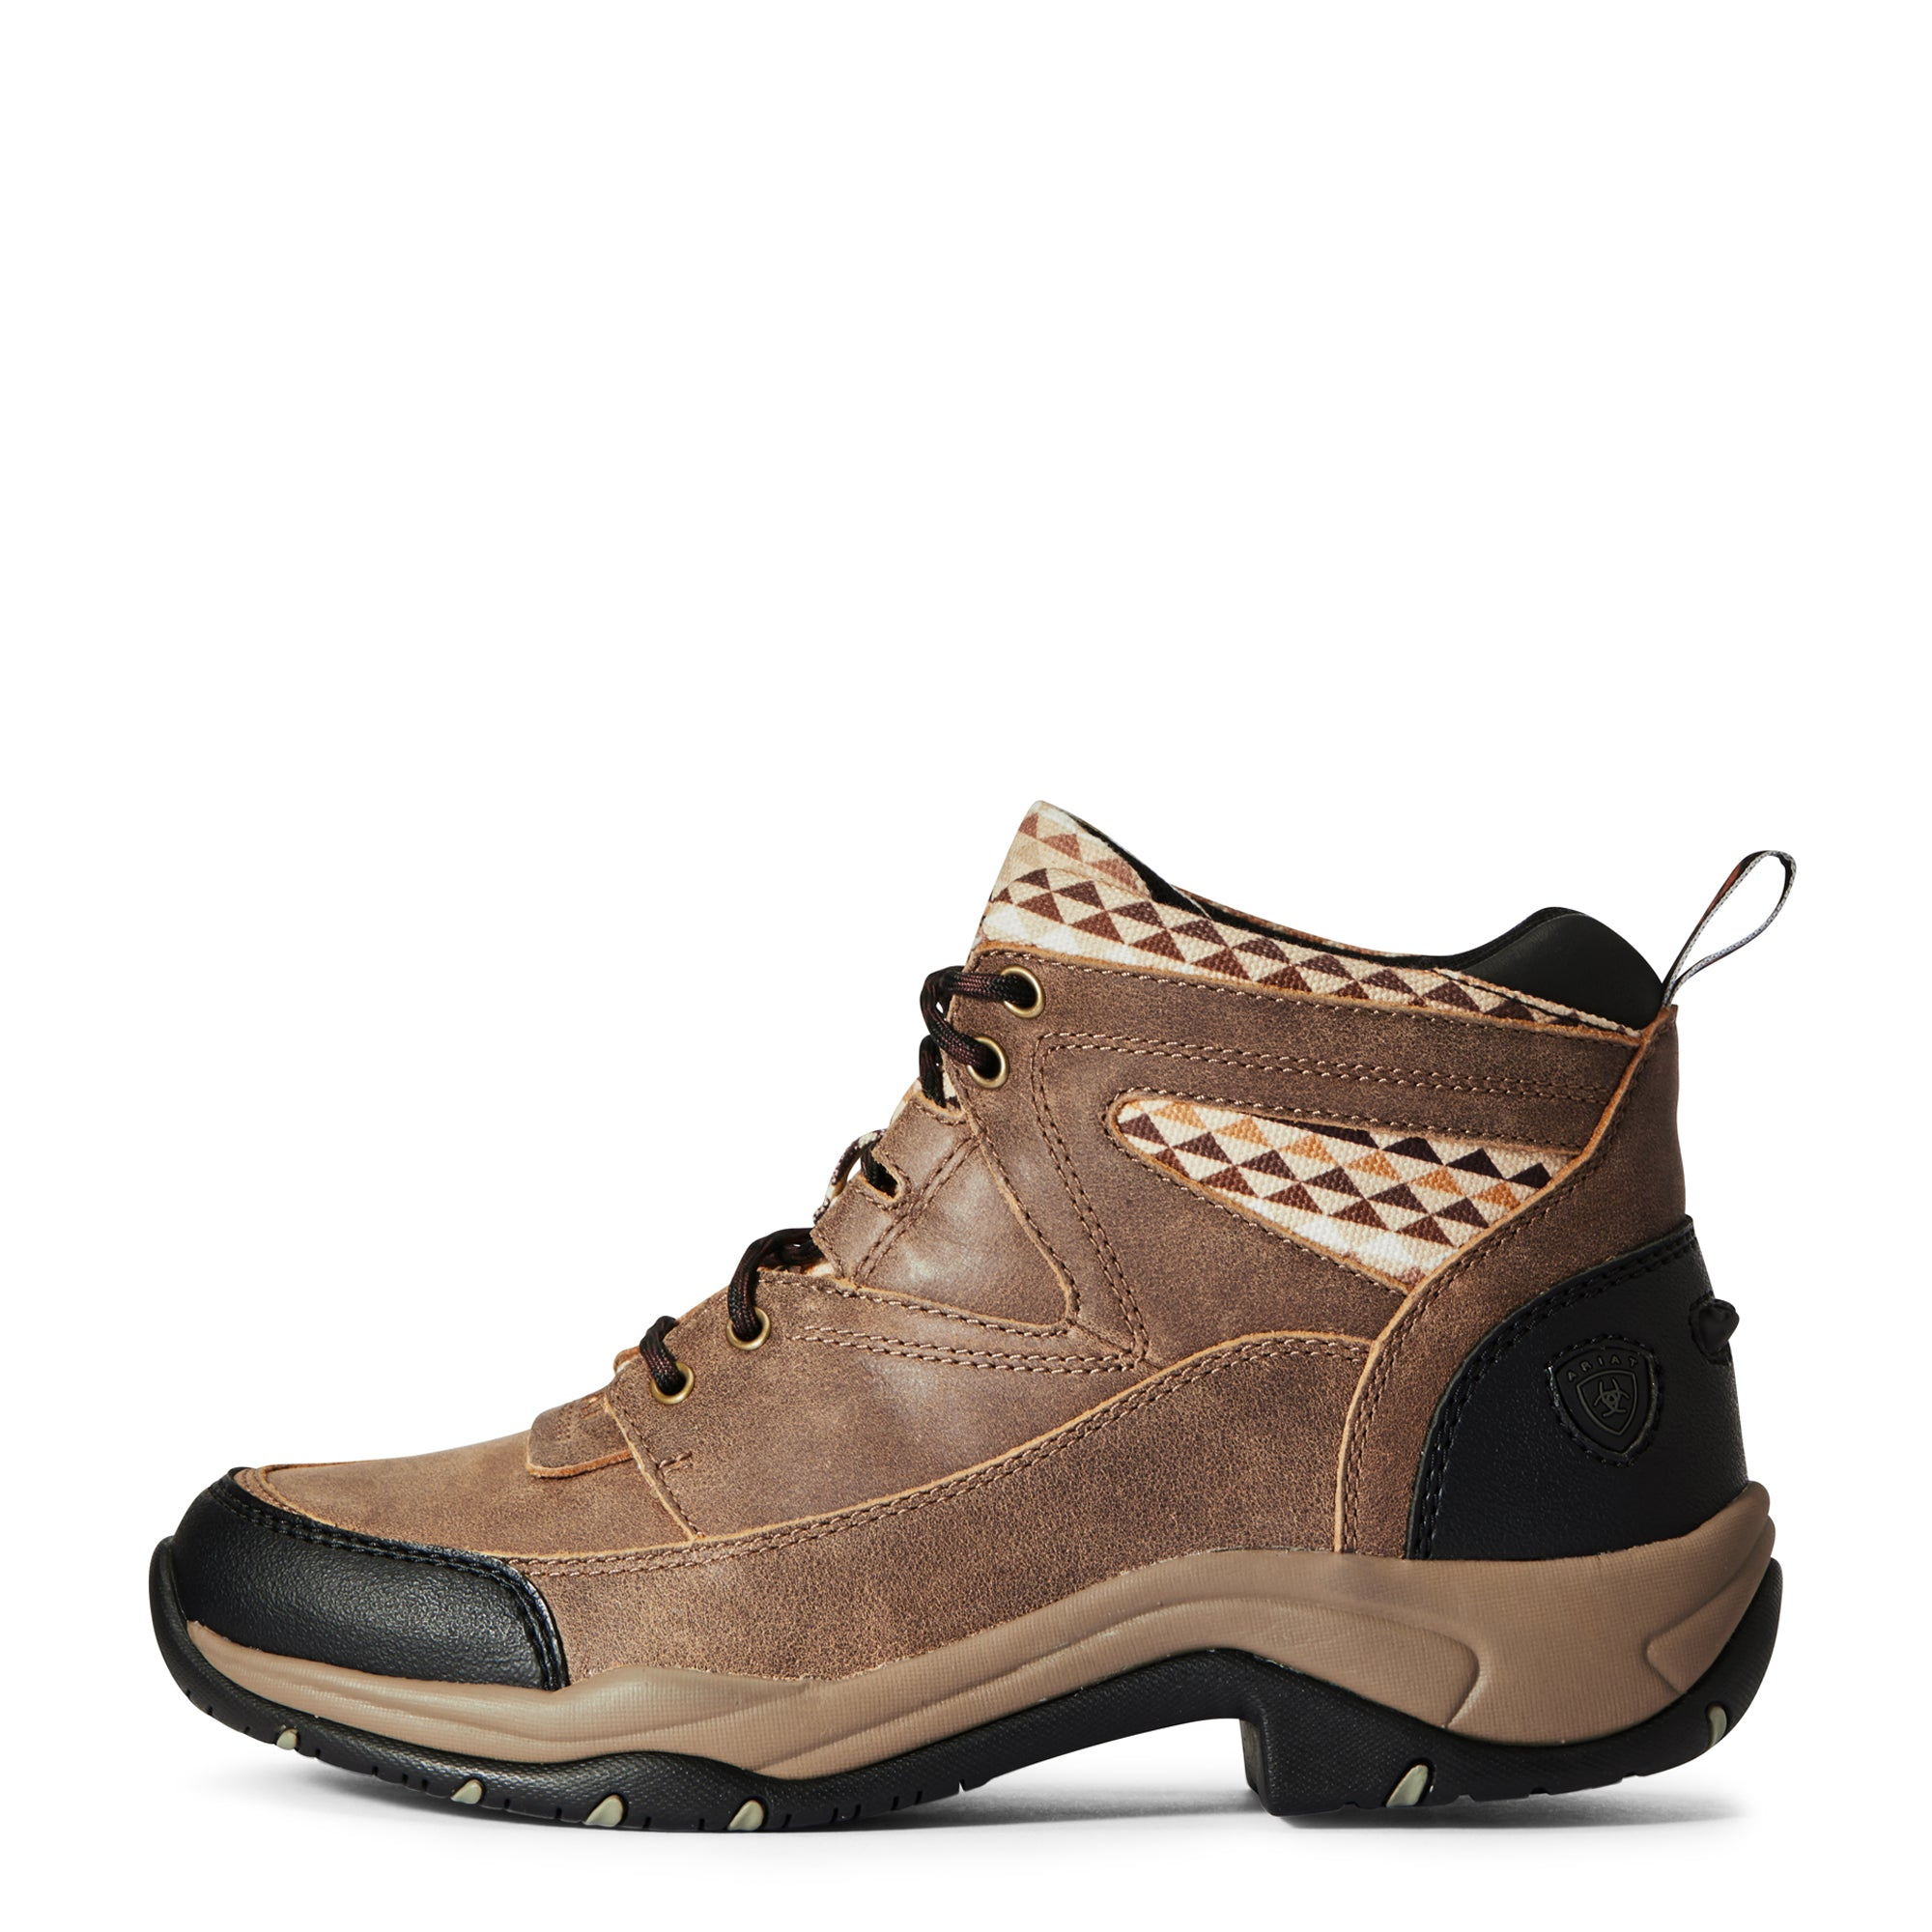 'Ariat' Women's 4